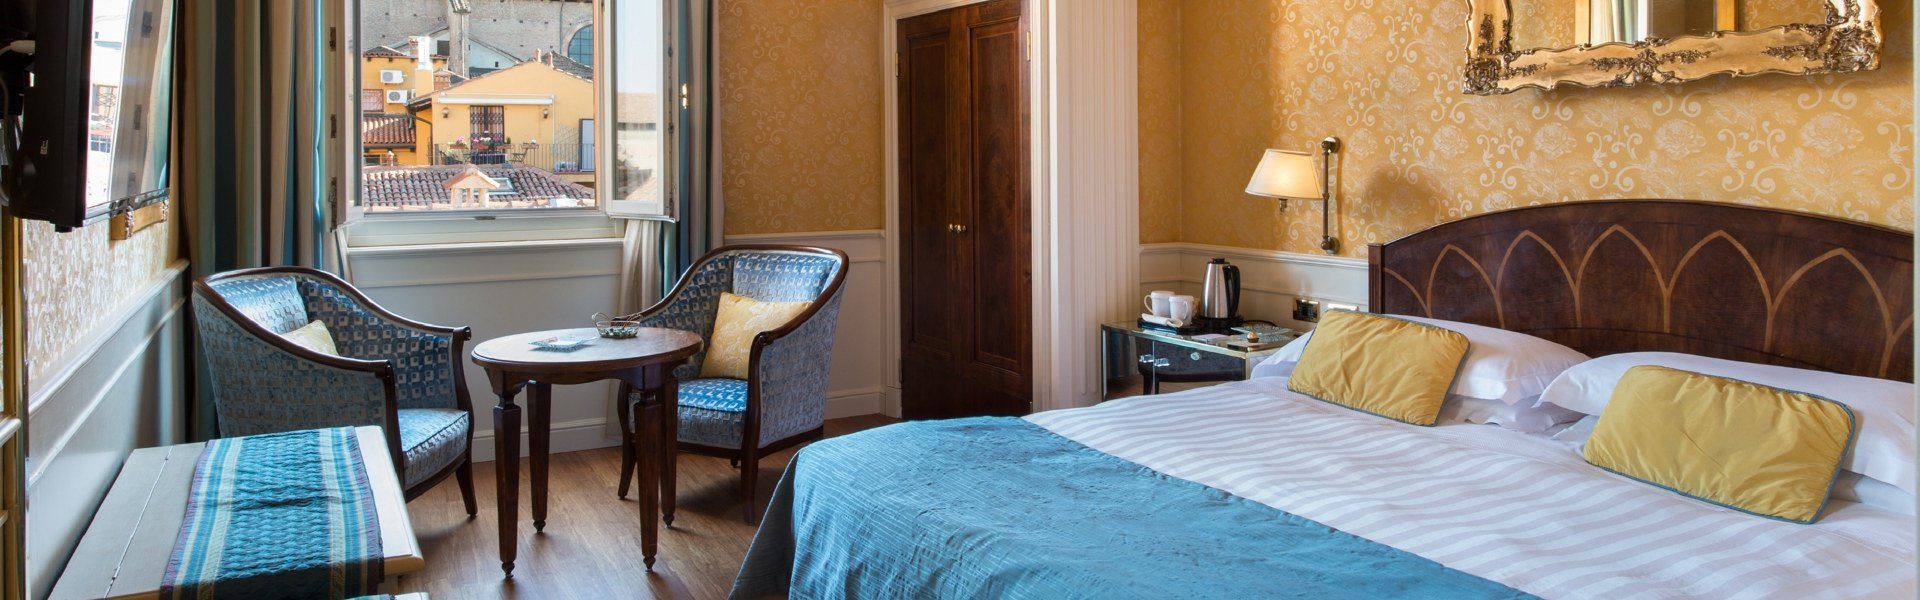 Experience the charm  art hotel orologio bologna